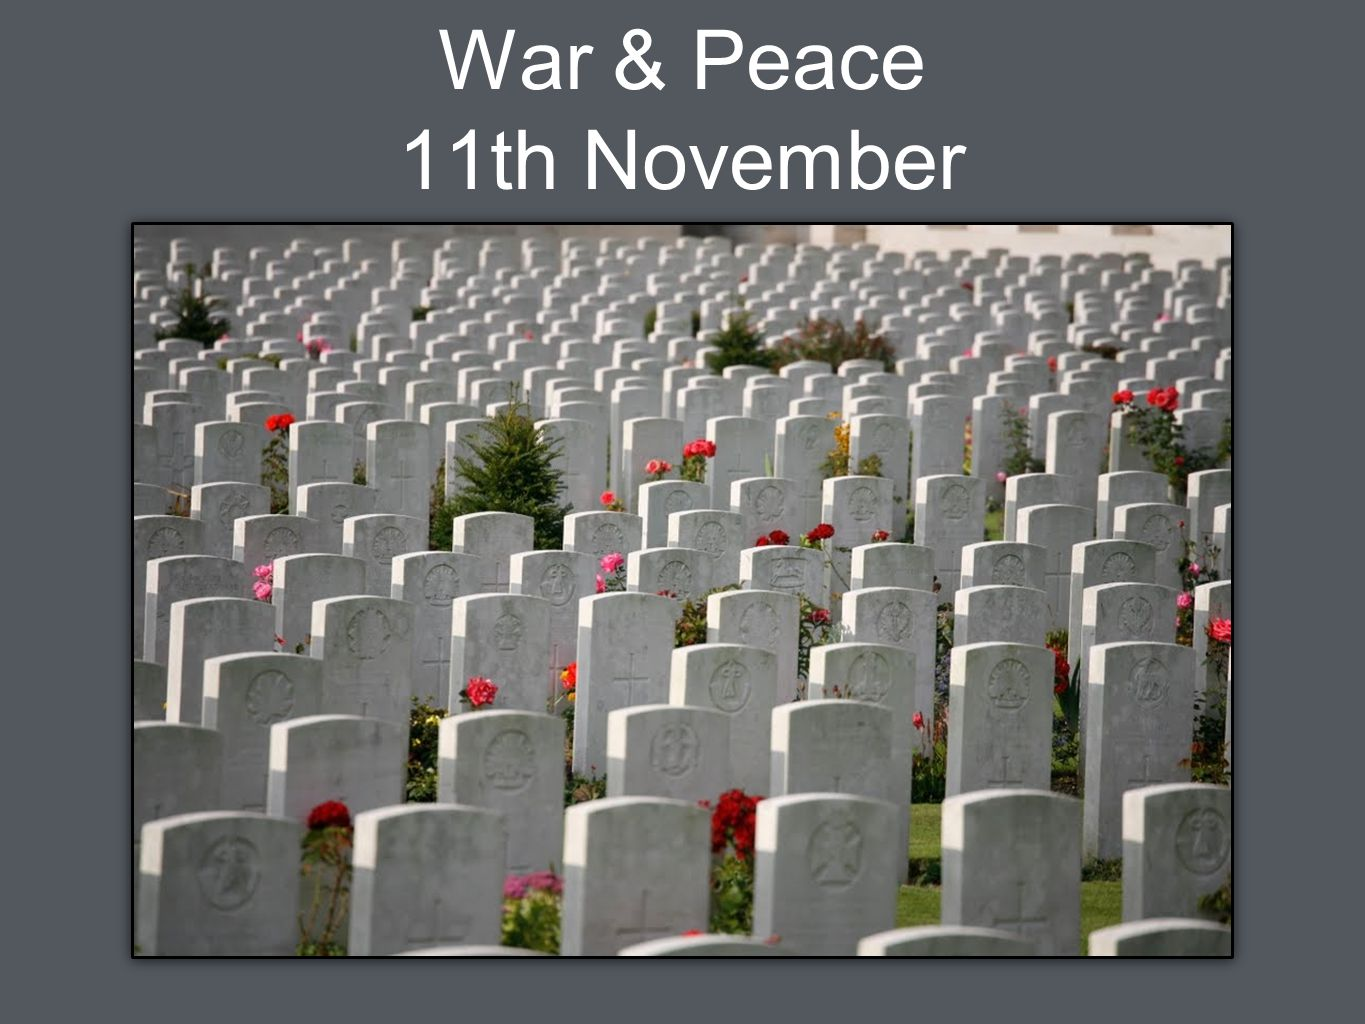 War & Peace 11th November